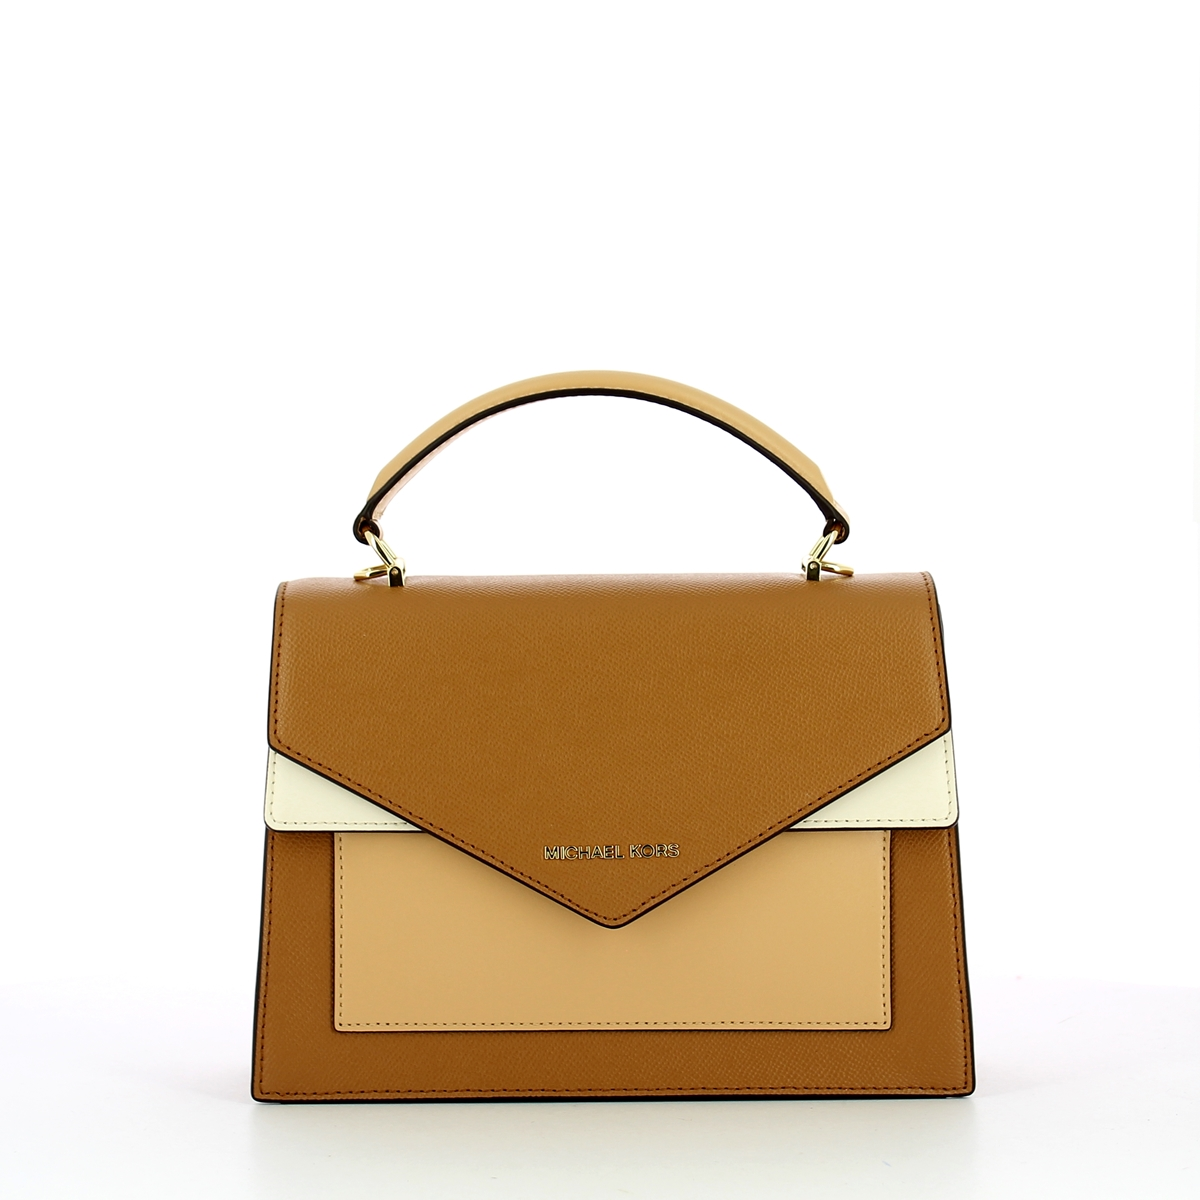 MD TH SATCHEL 245